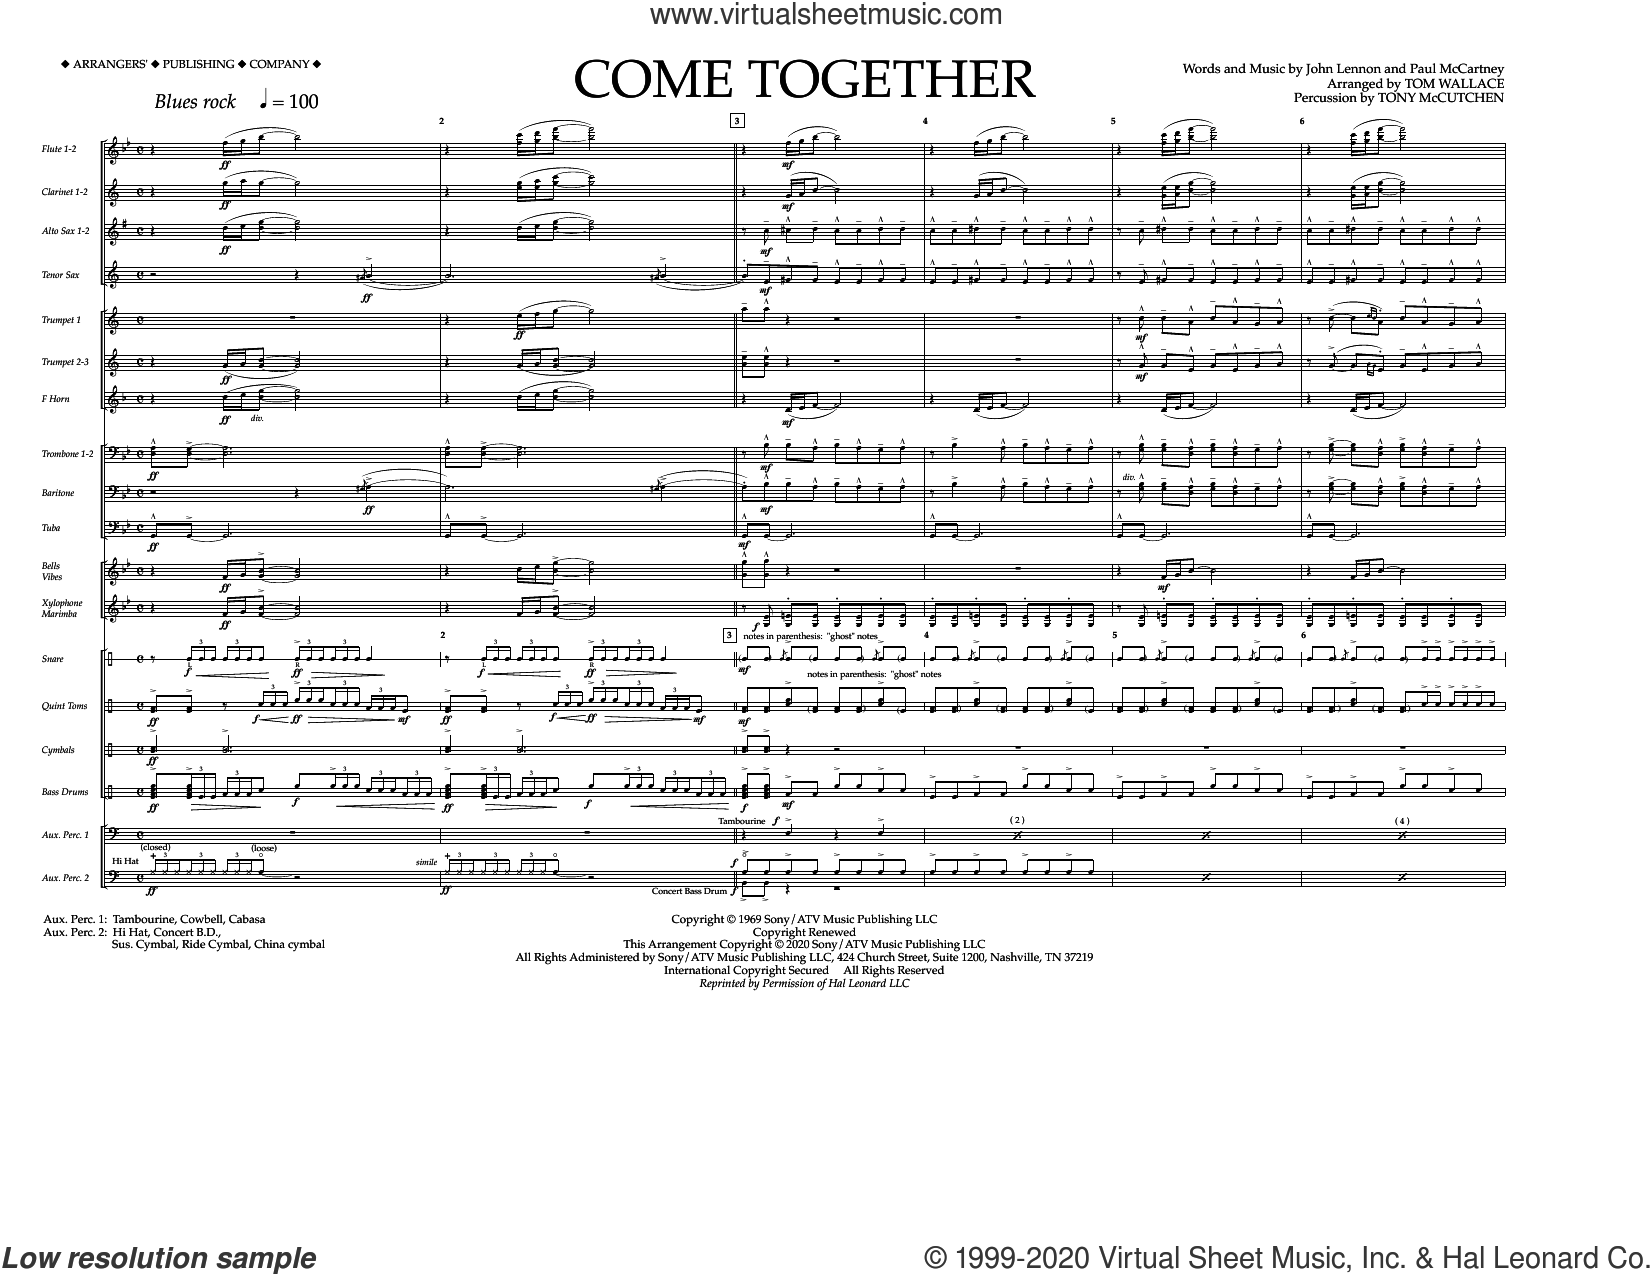 Come Together (arr. Tom Wallace) (COMPLETE) sheet music for marching band by The Beatles, John Lennon, Paul McCartney, Tom Wallace and Tony McCutchen, intermediate skill level